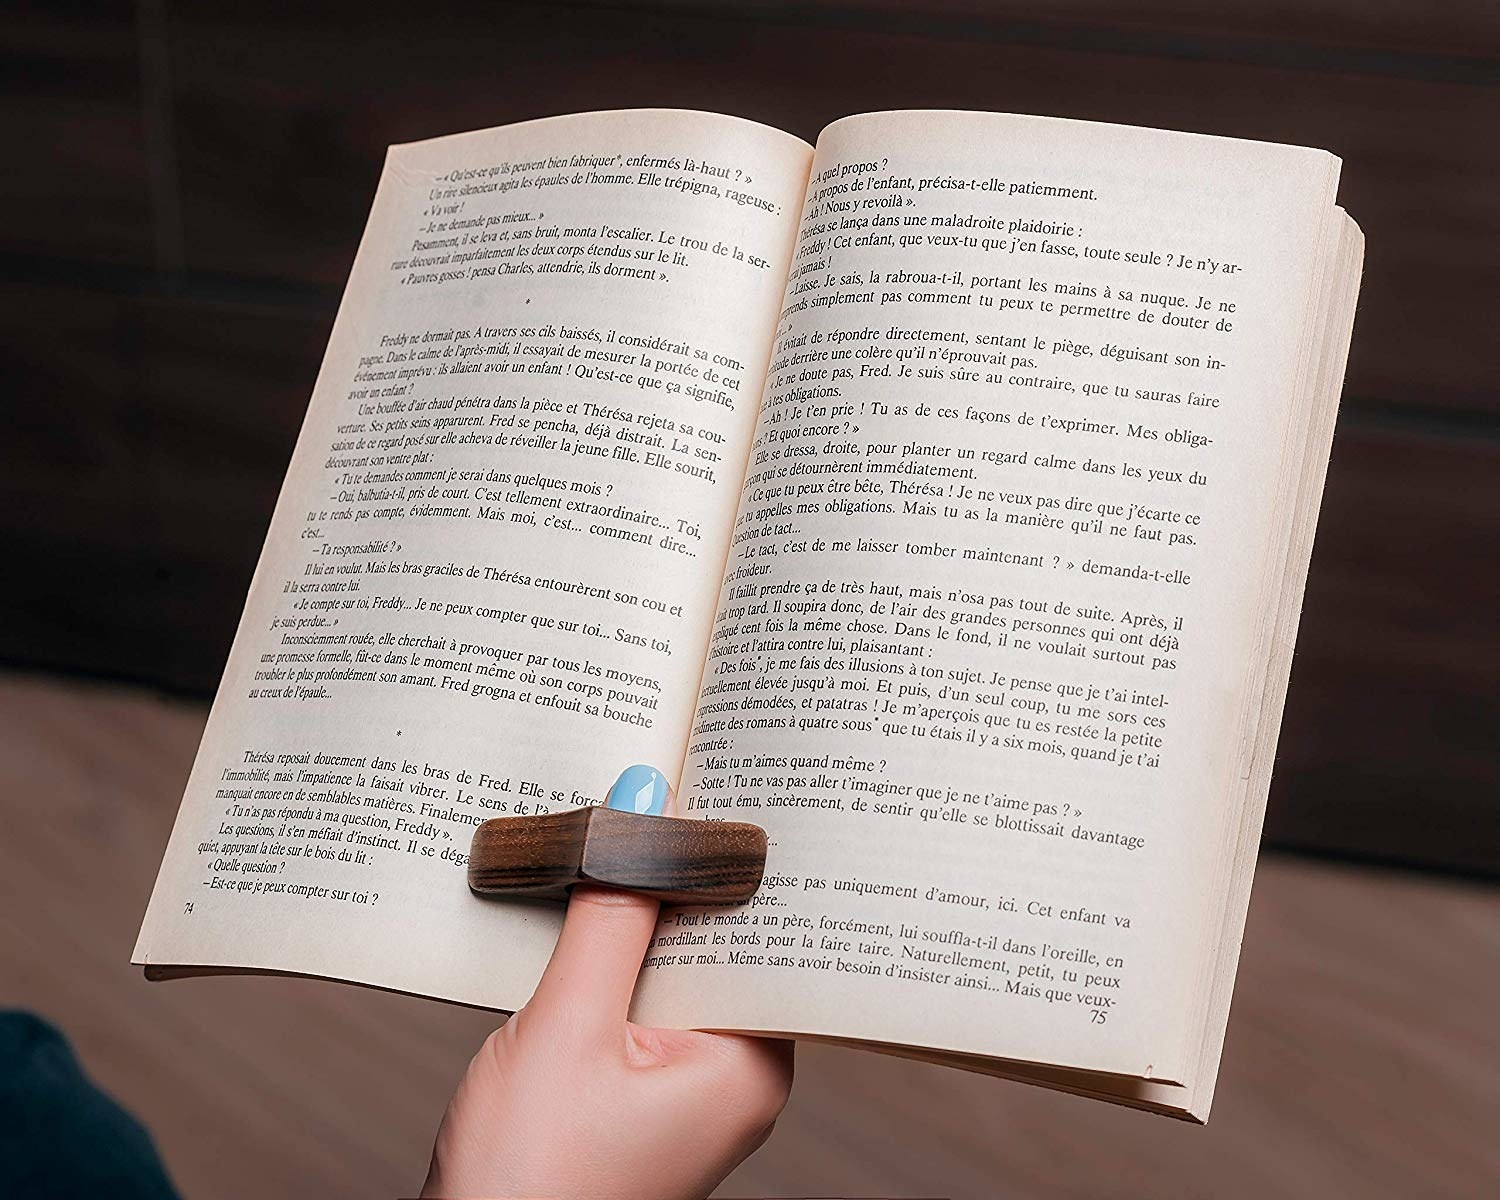 A person reading a book with a large diamond-shaped wooden ring over their thumb